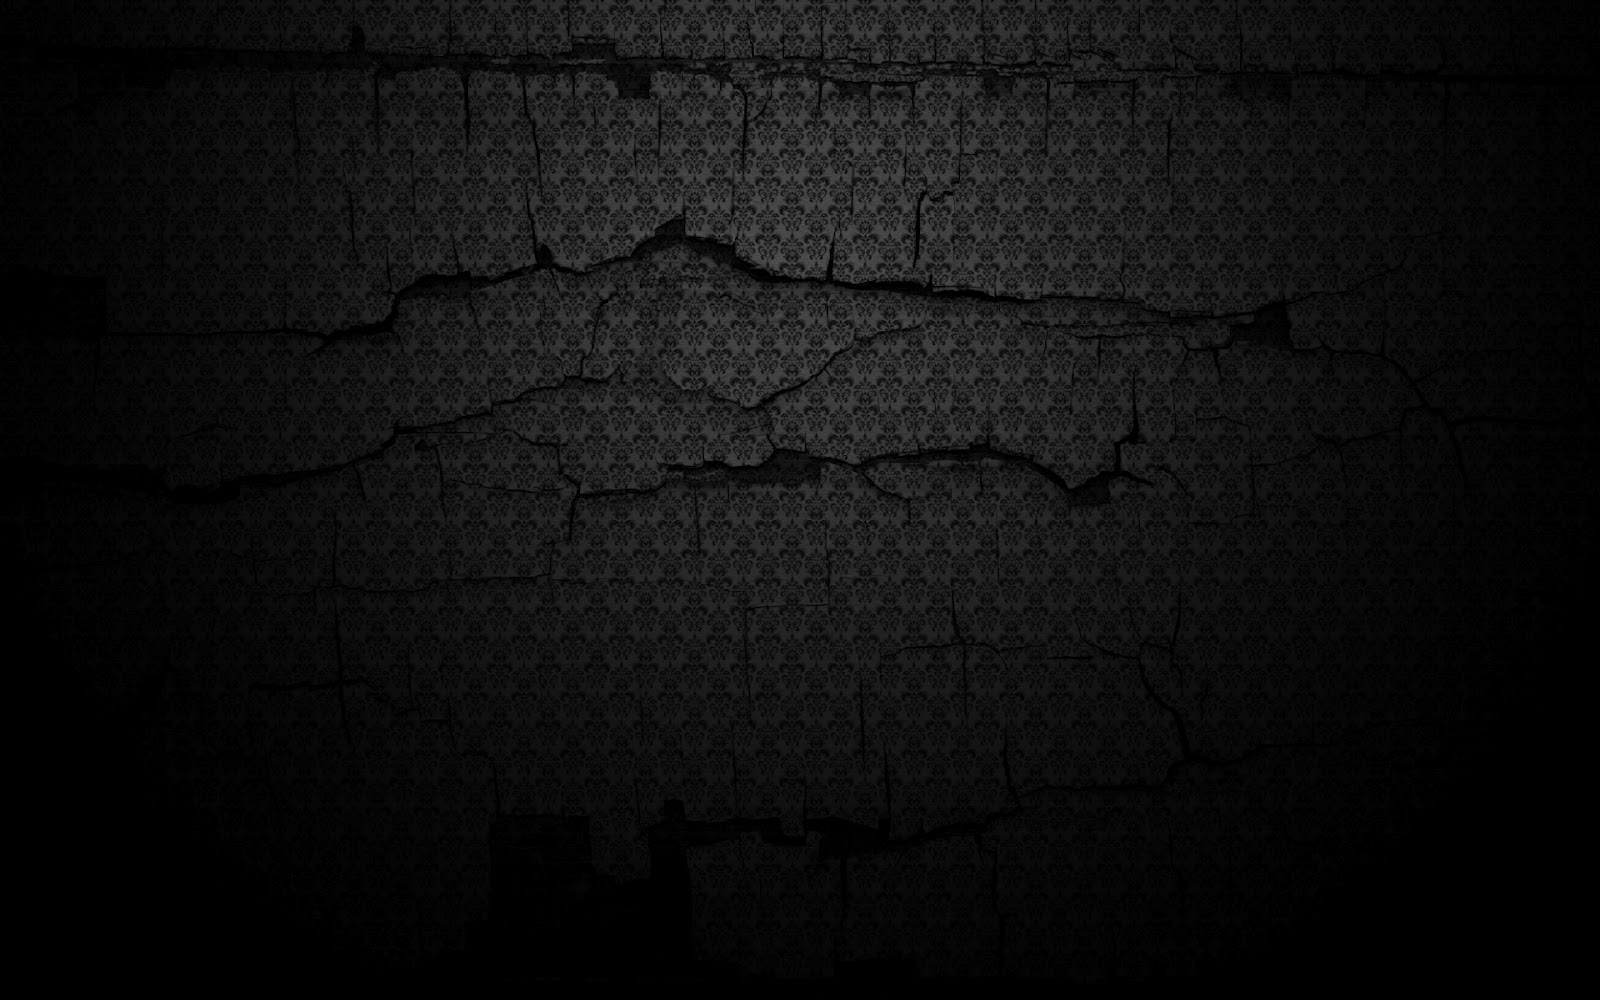 Dark Patterns HD WallpapersImage to Wallpaper 1600x1000